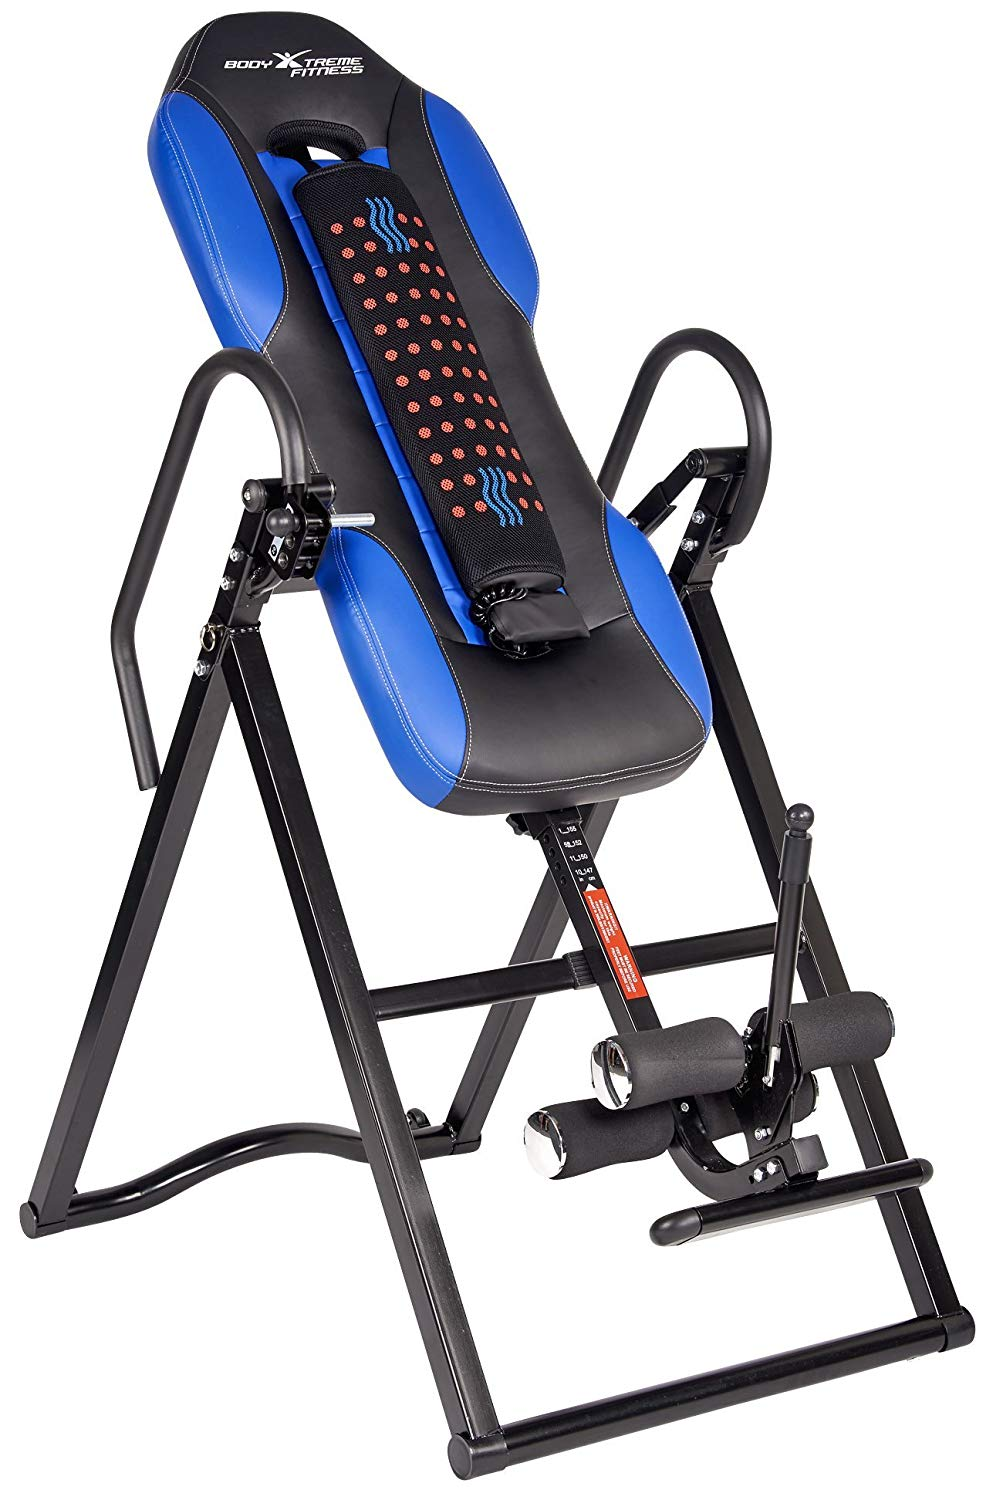 Top 5 Best Inversion Tables of 2018 to Ease Your Back Pain 9